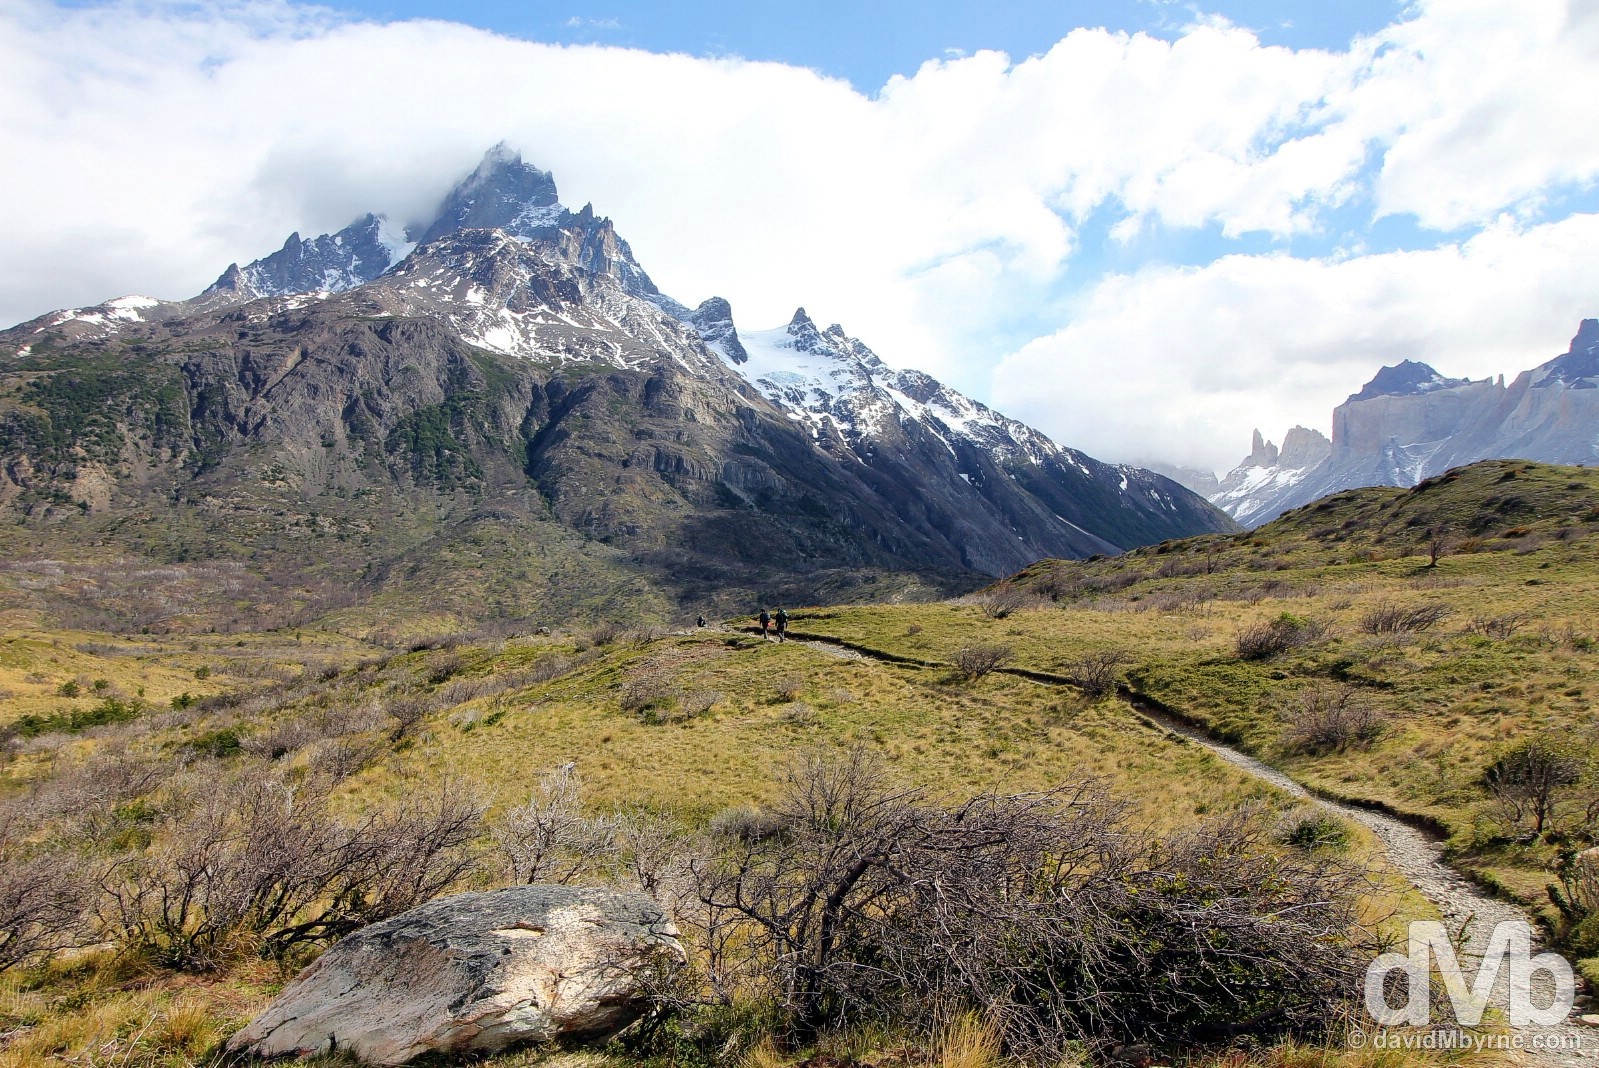 On the trail in Torres del Paine National Park, Chile. November 22, 2015.